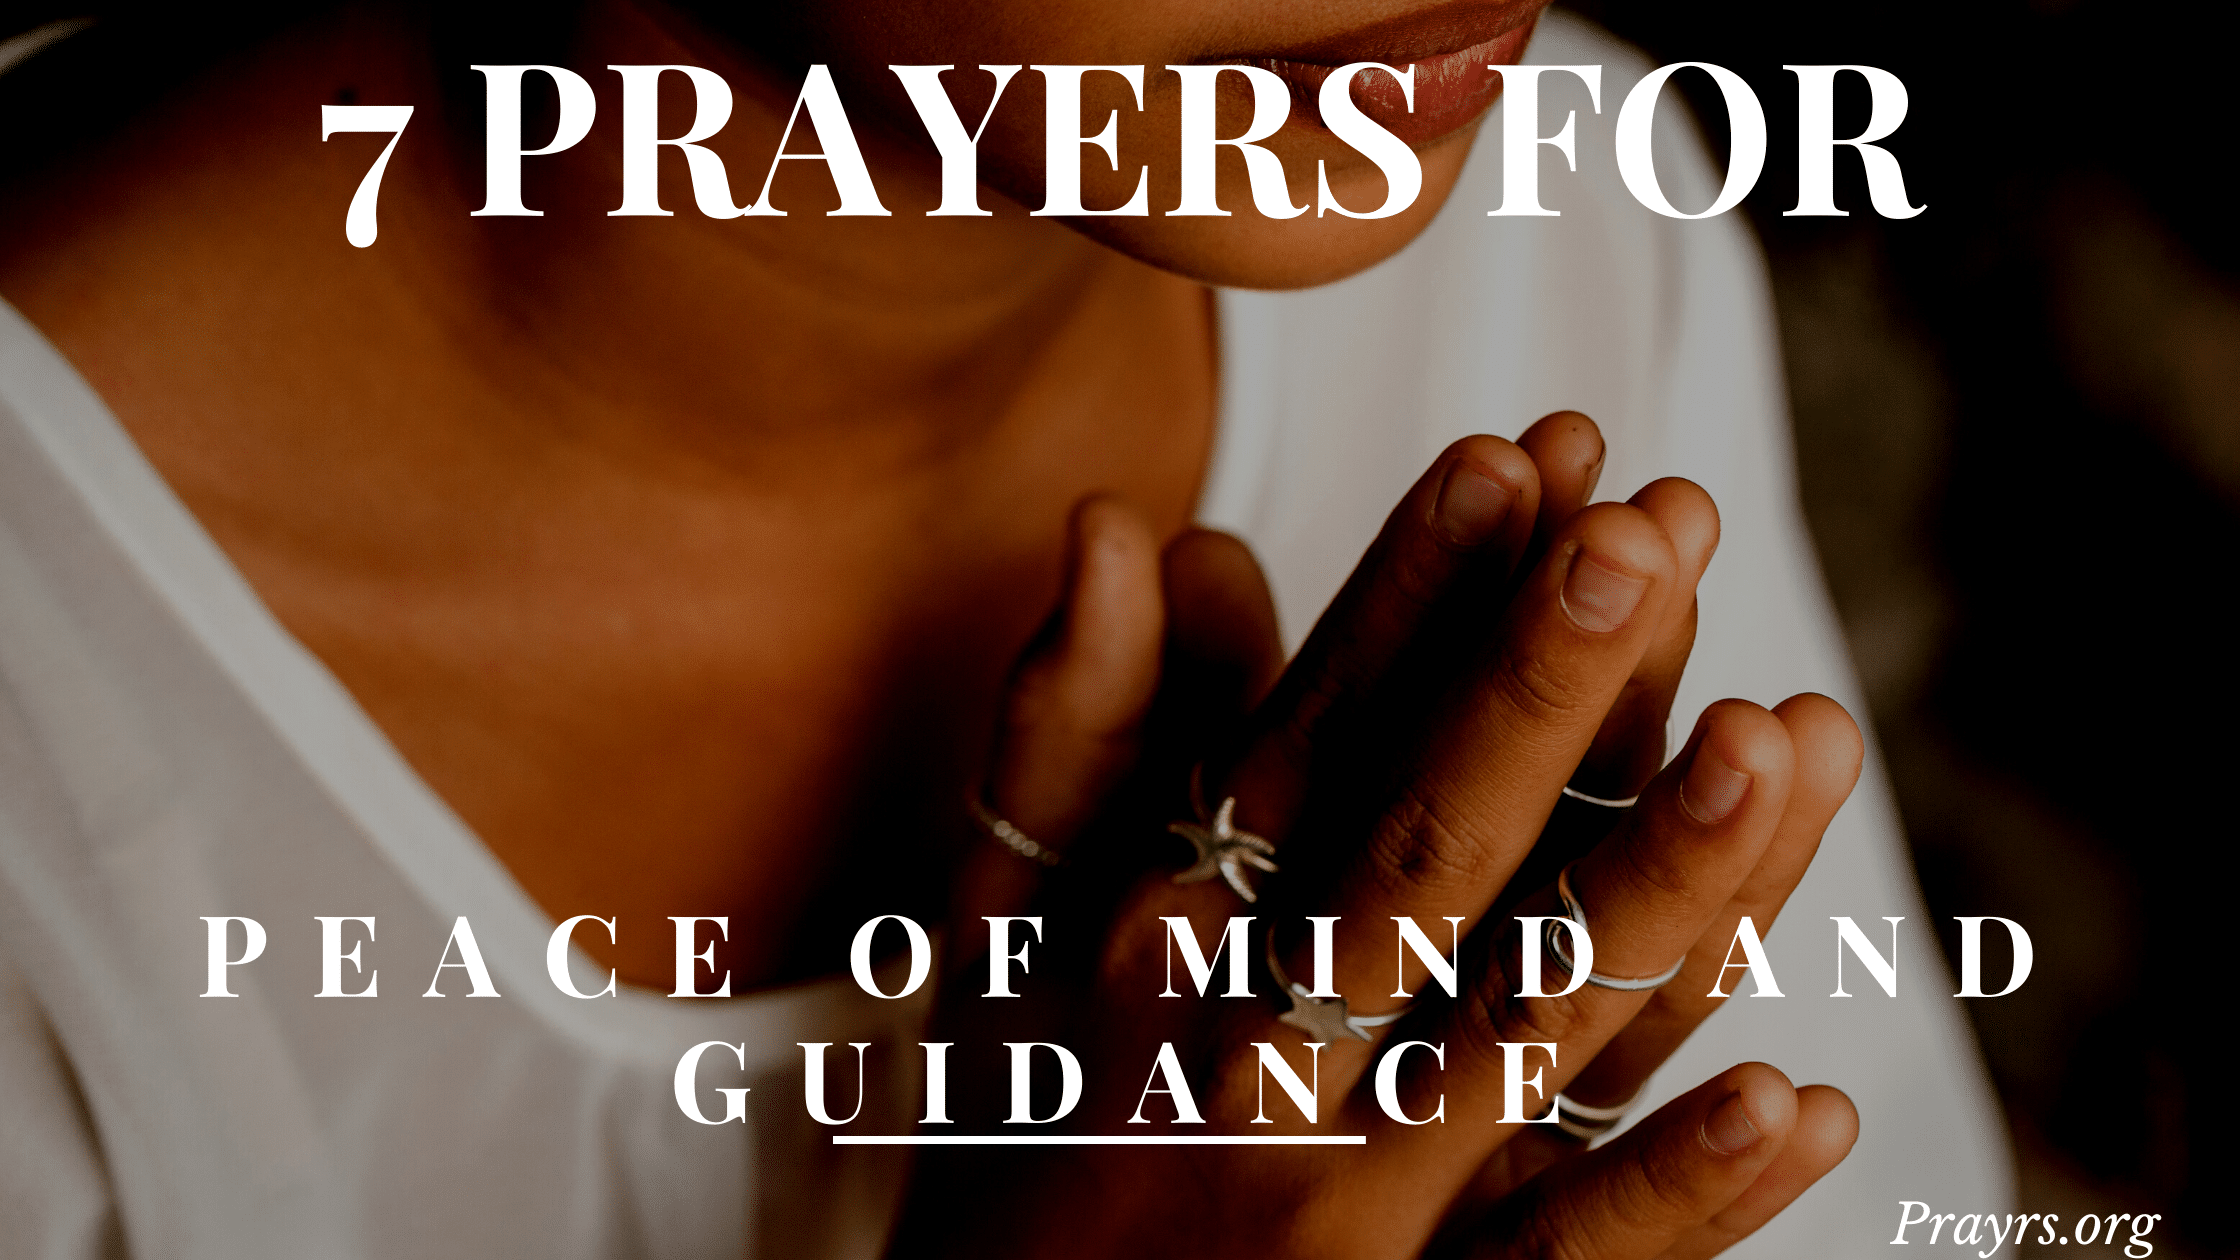 Prayers for Peace of mind and guidance